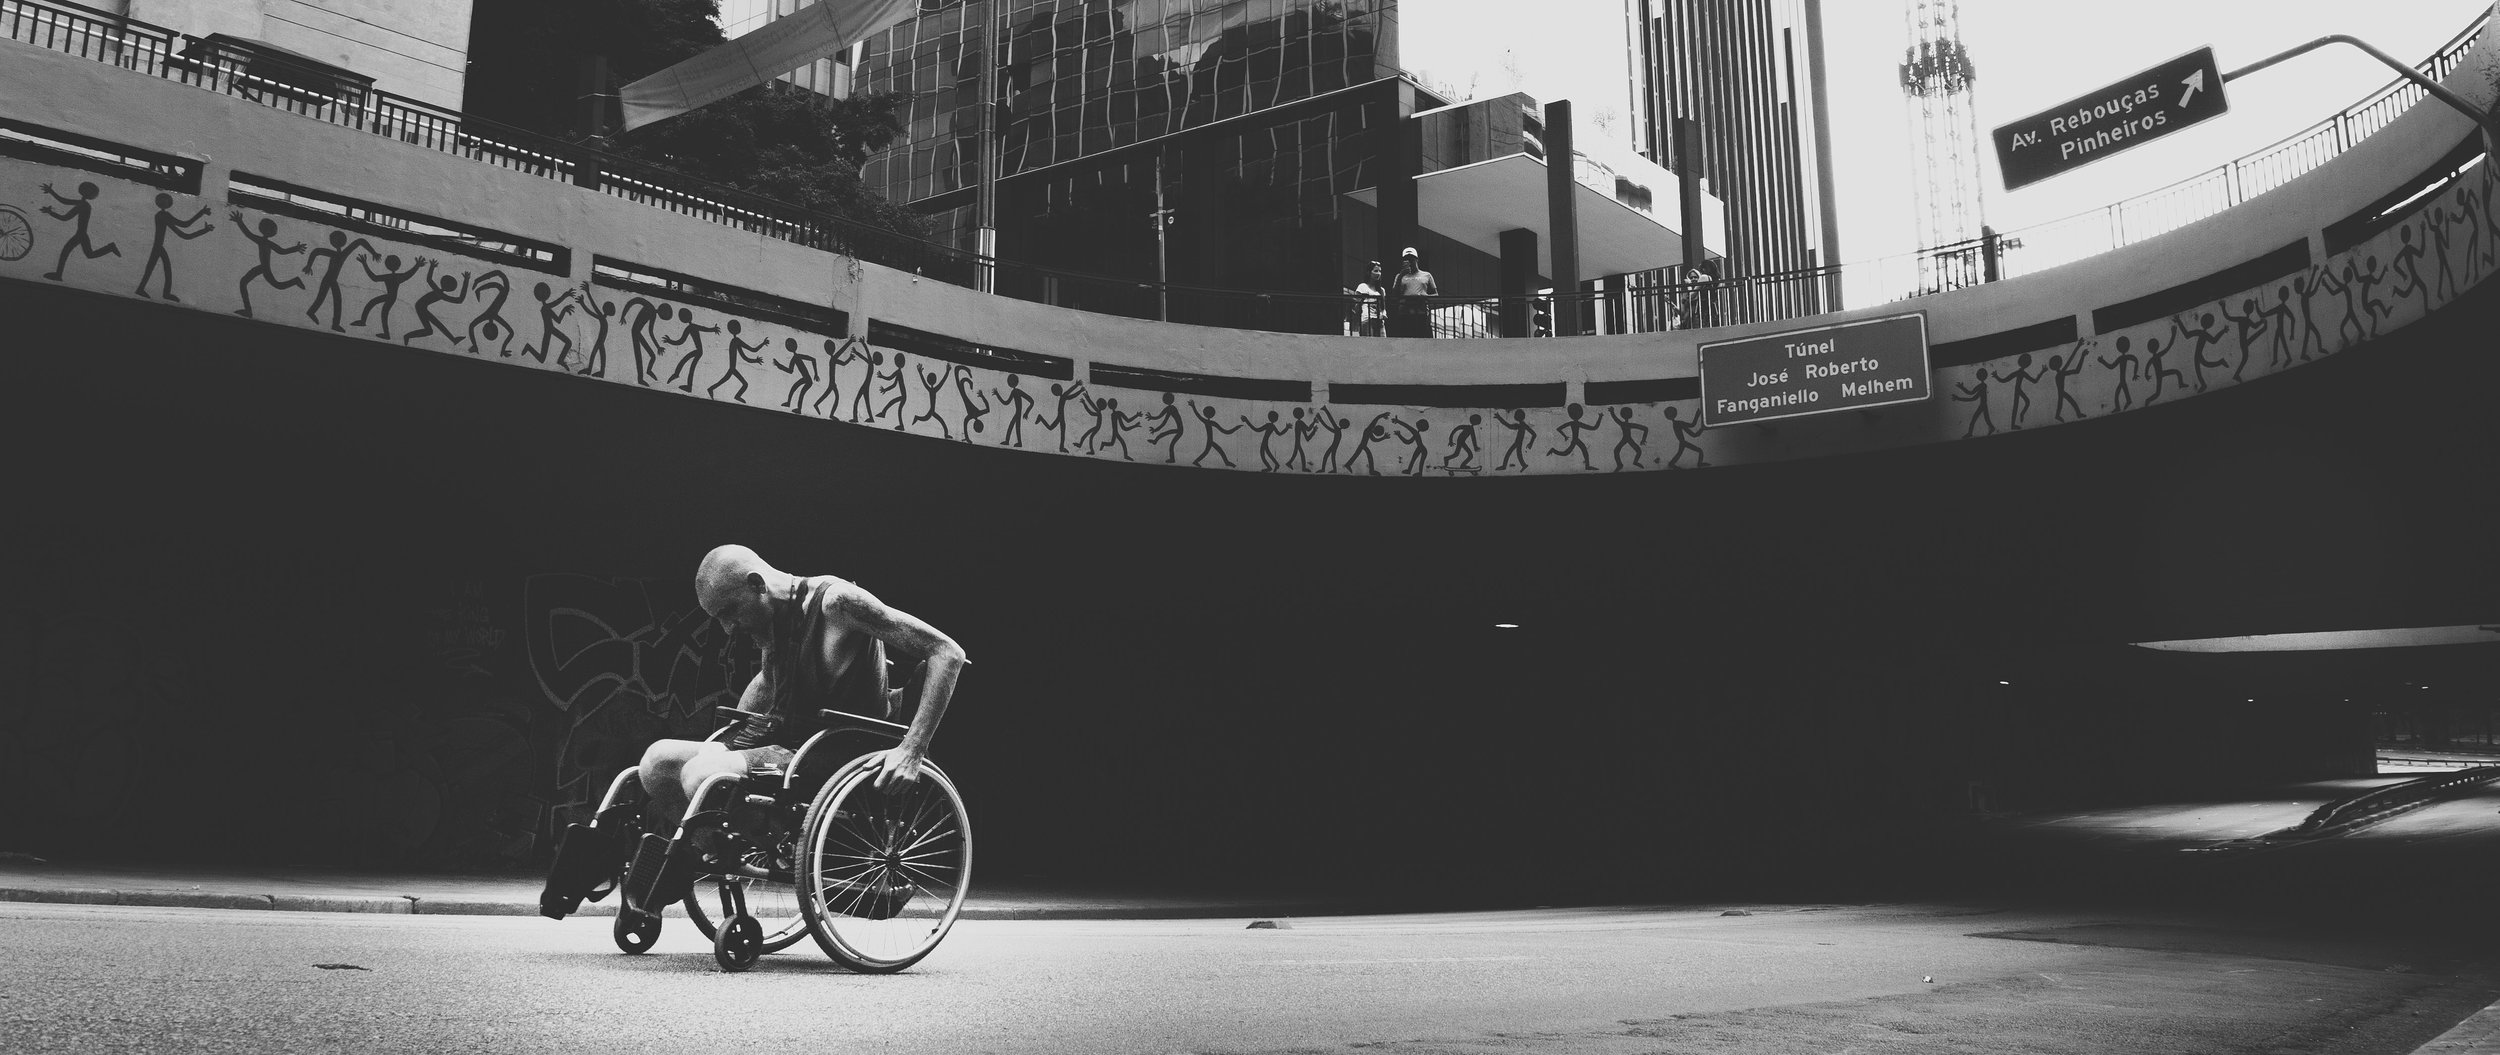 Disabled man wheelchair alone on street.jpg